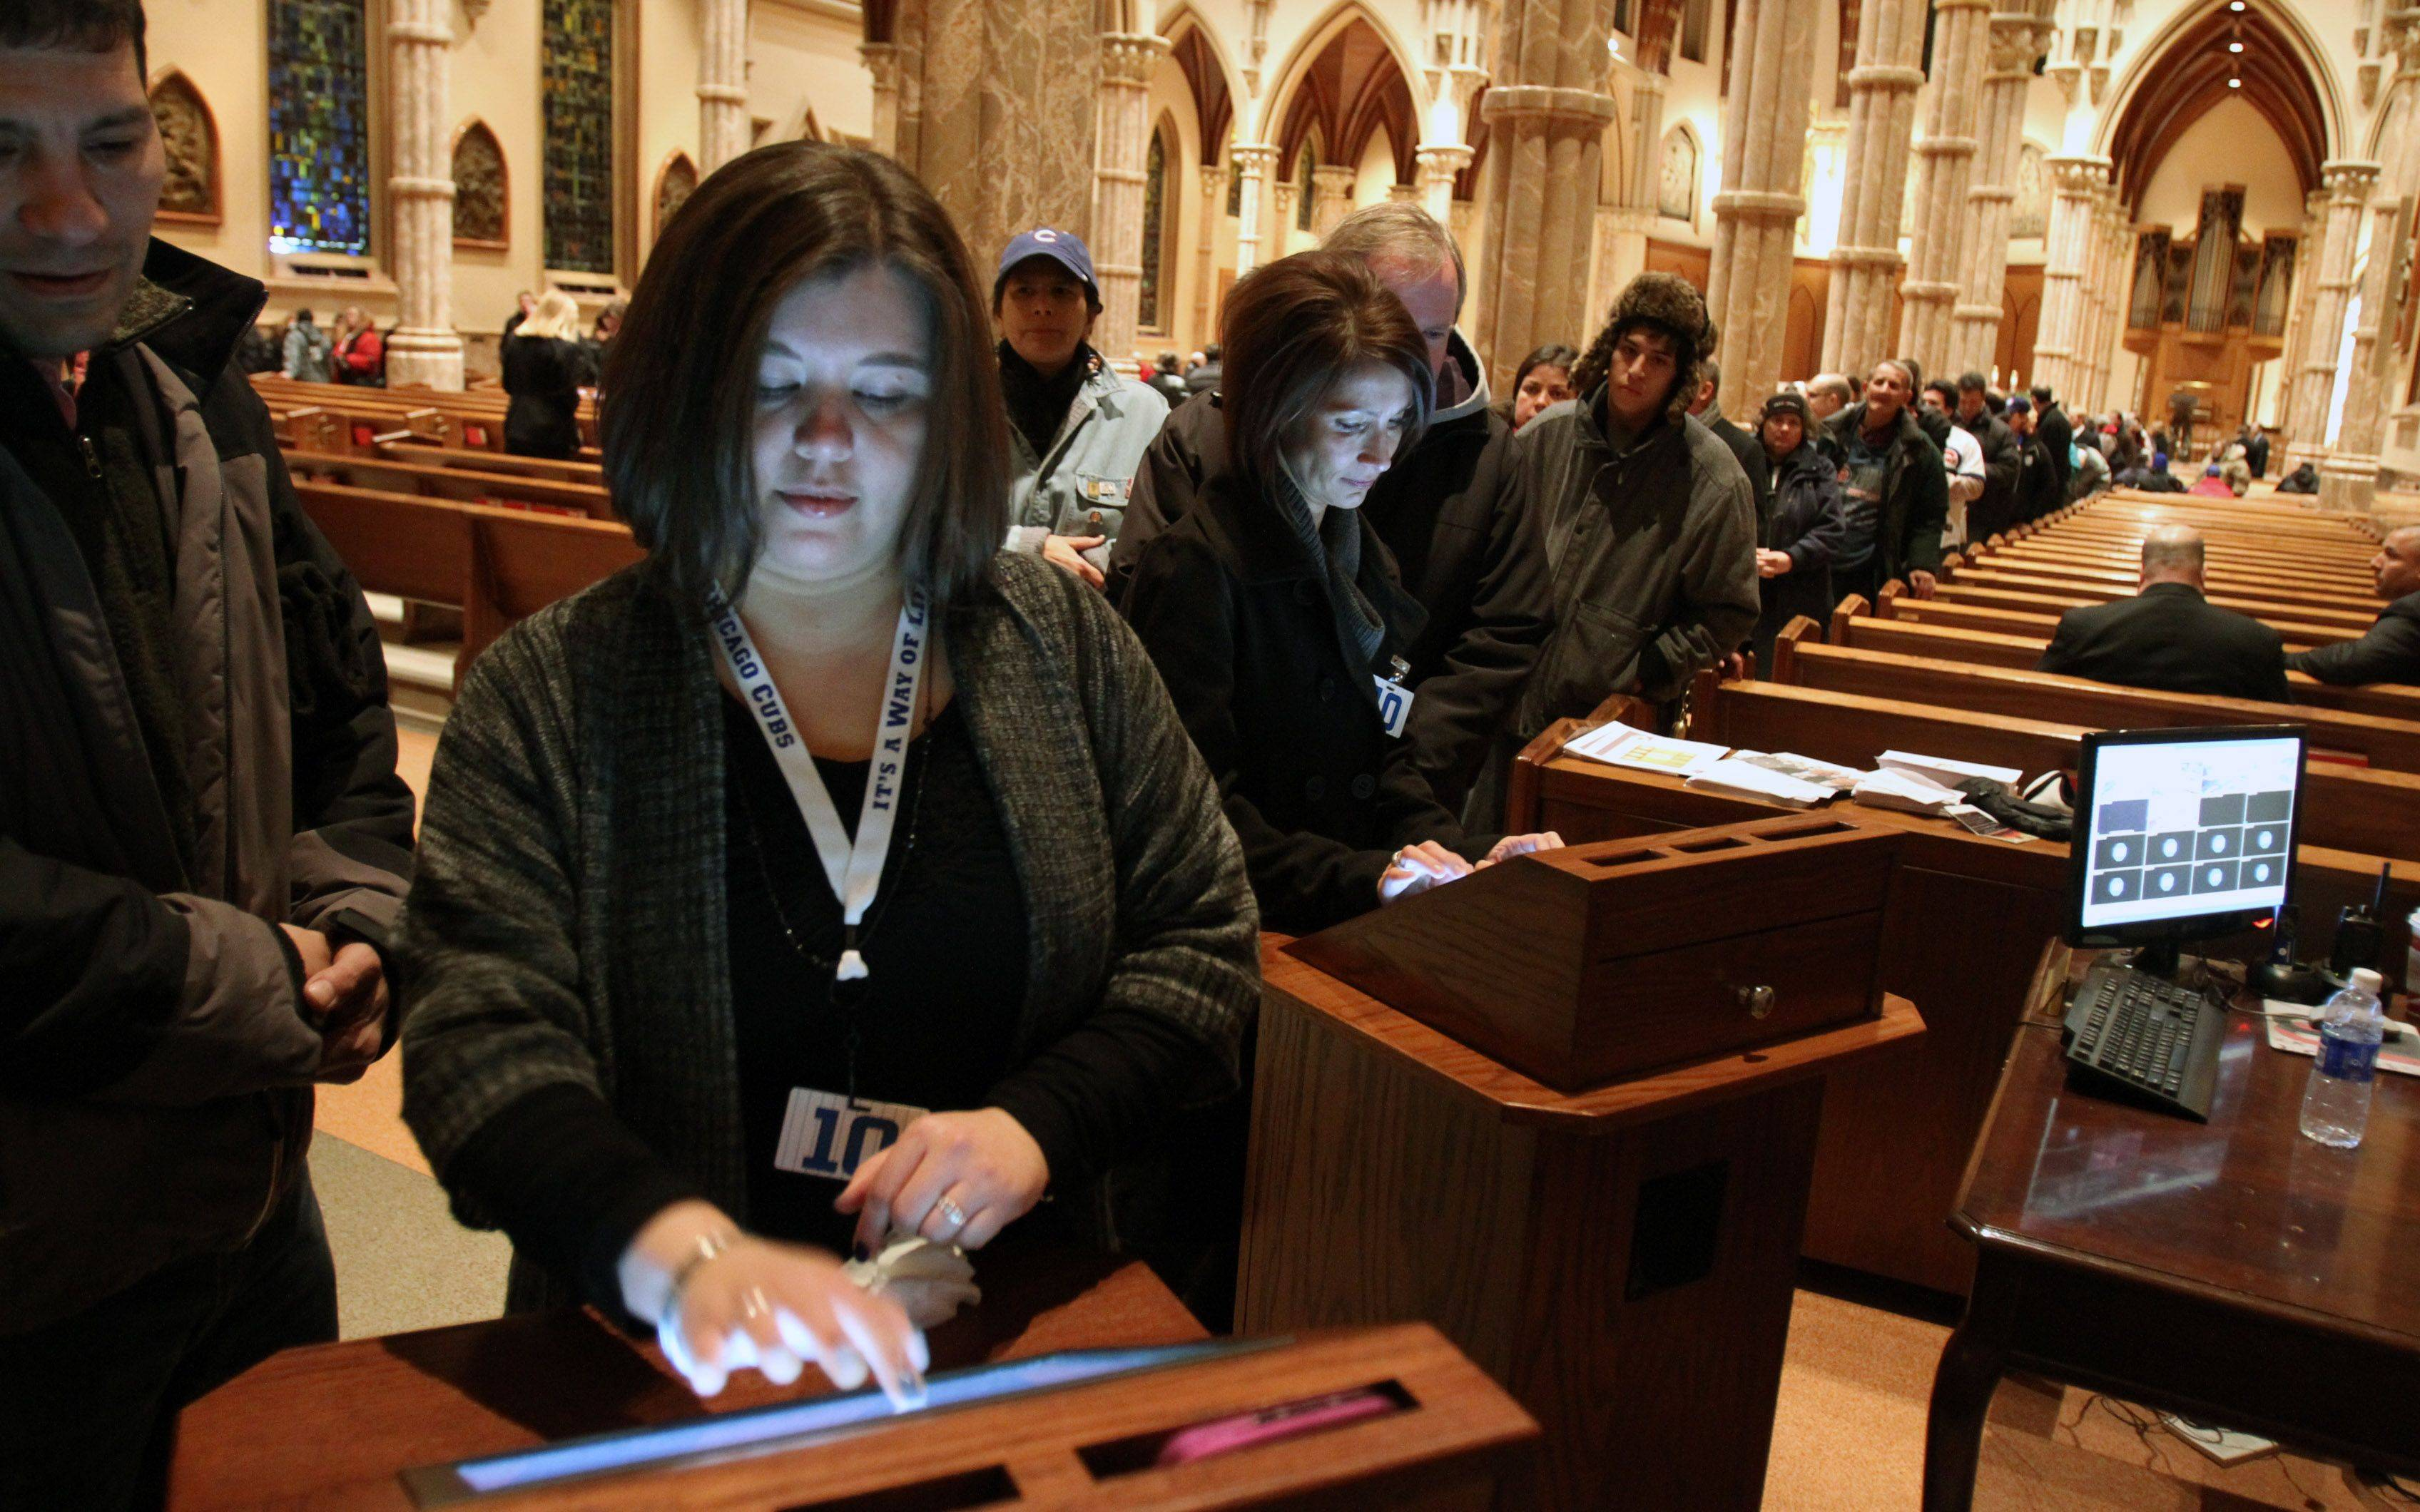 Chicago Cubs employees were typing in messages by fans at the public visitation for Ron Santo.